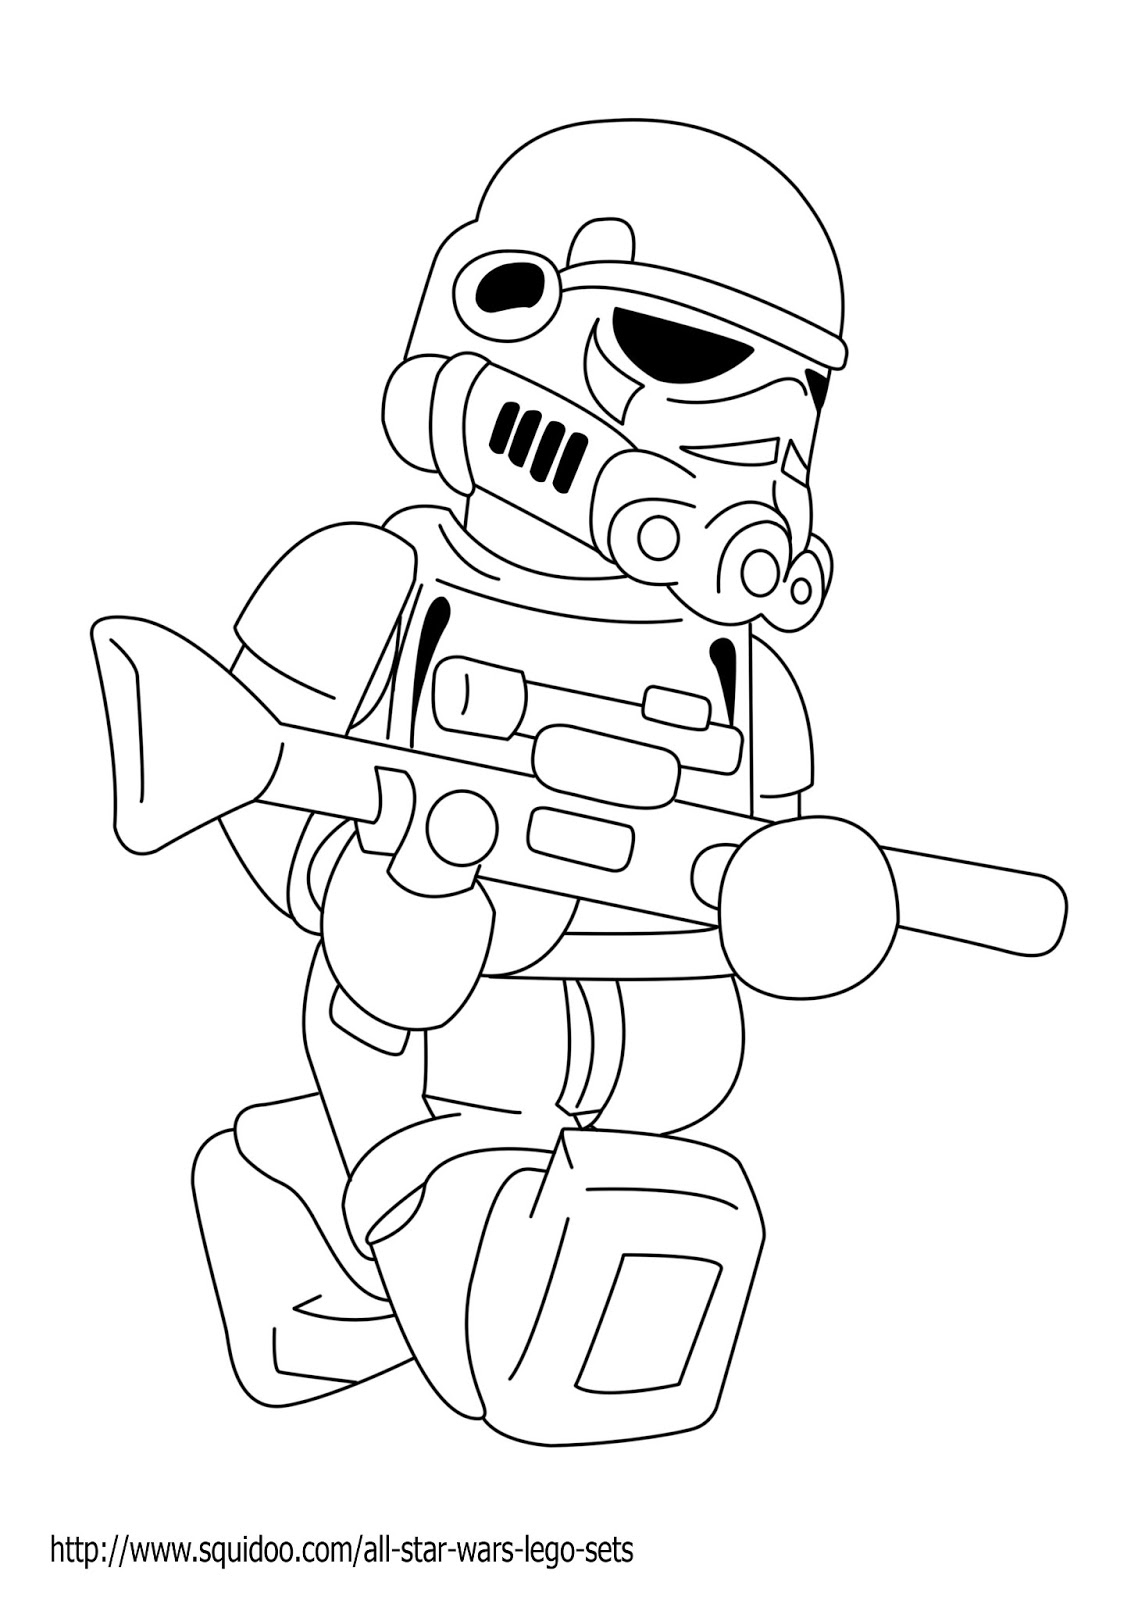 1131x1600 Lego Darth Vader Coloring Pages Darth Vader Coloring Pages